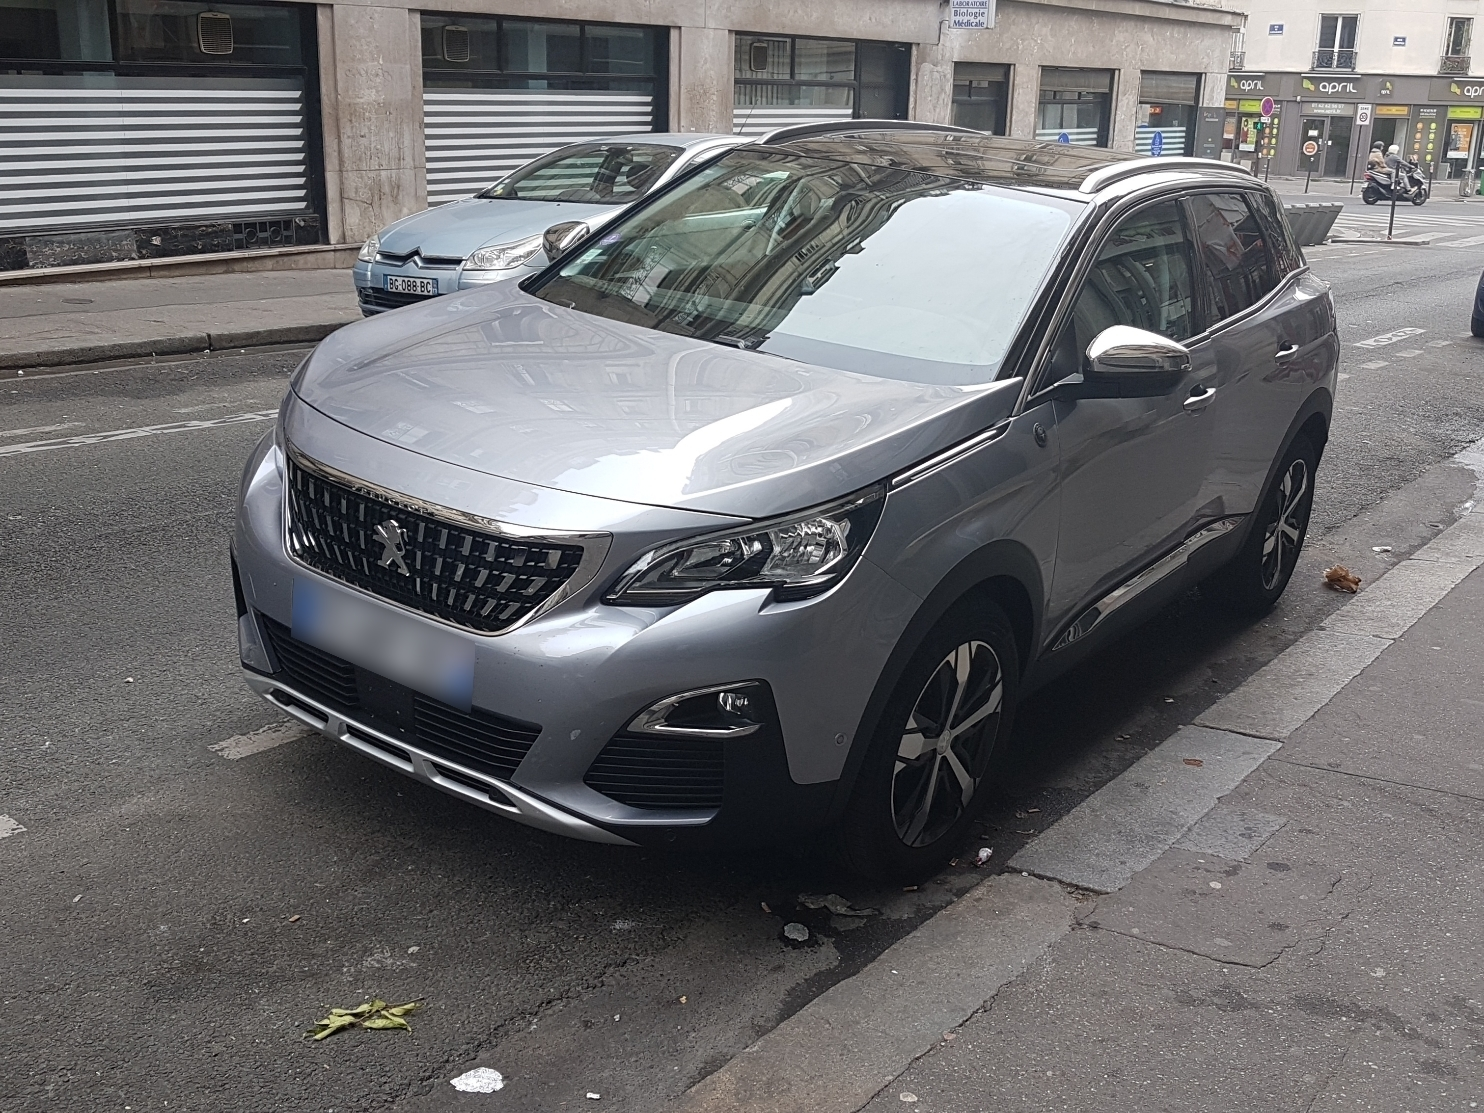 PEUGEOT 3008 GENERATION-II 1.2 PURETECH 130 CROSSWAY EAT BVA START-STOP EU6C